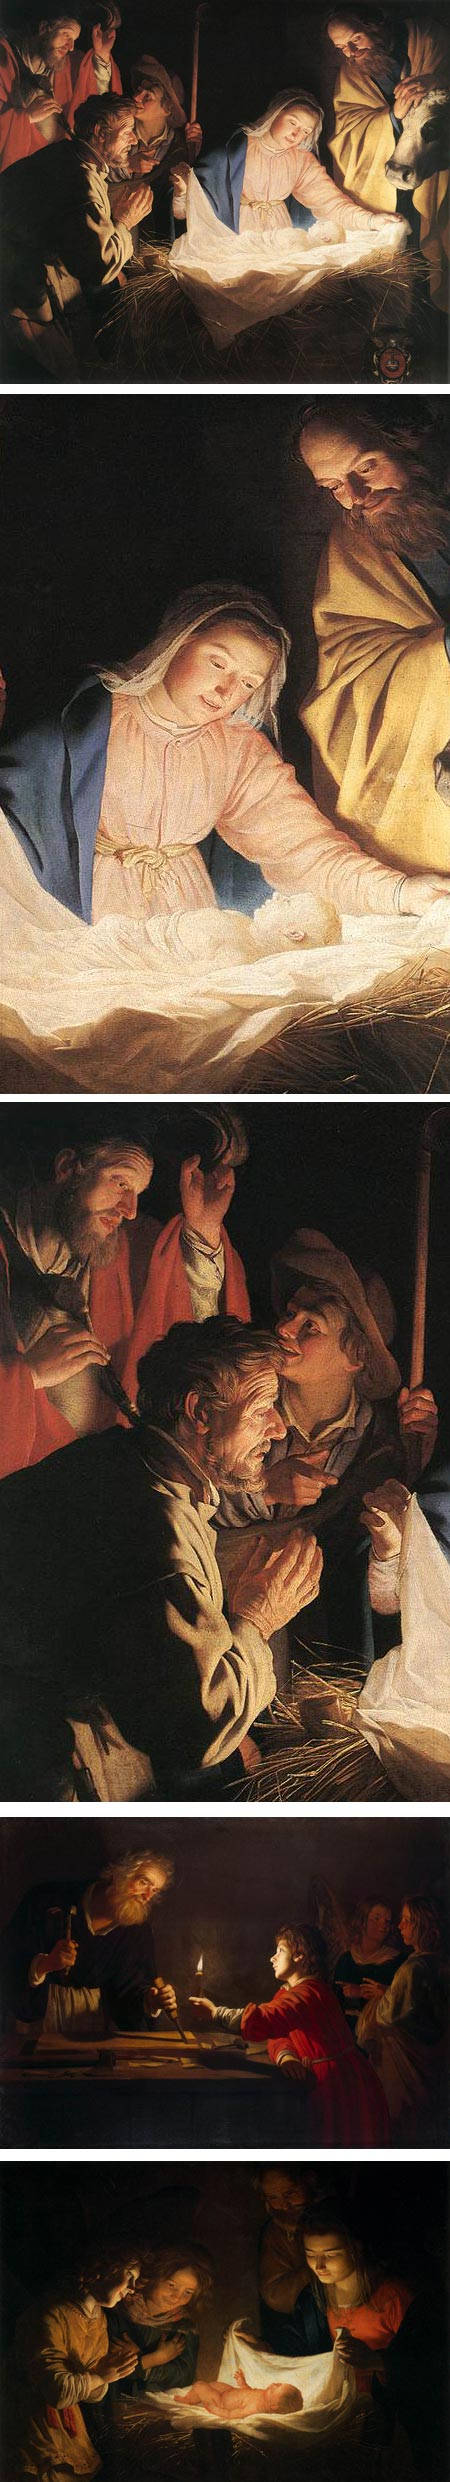 Adoration of the Shepherds, Gerrit van Honthorst